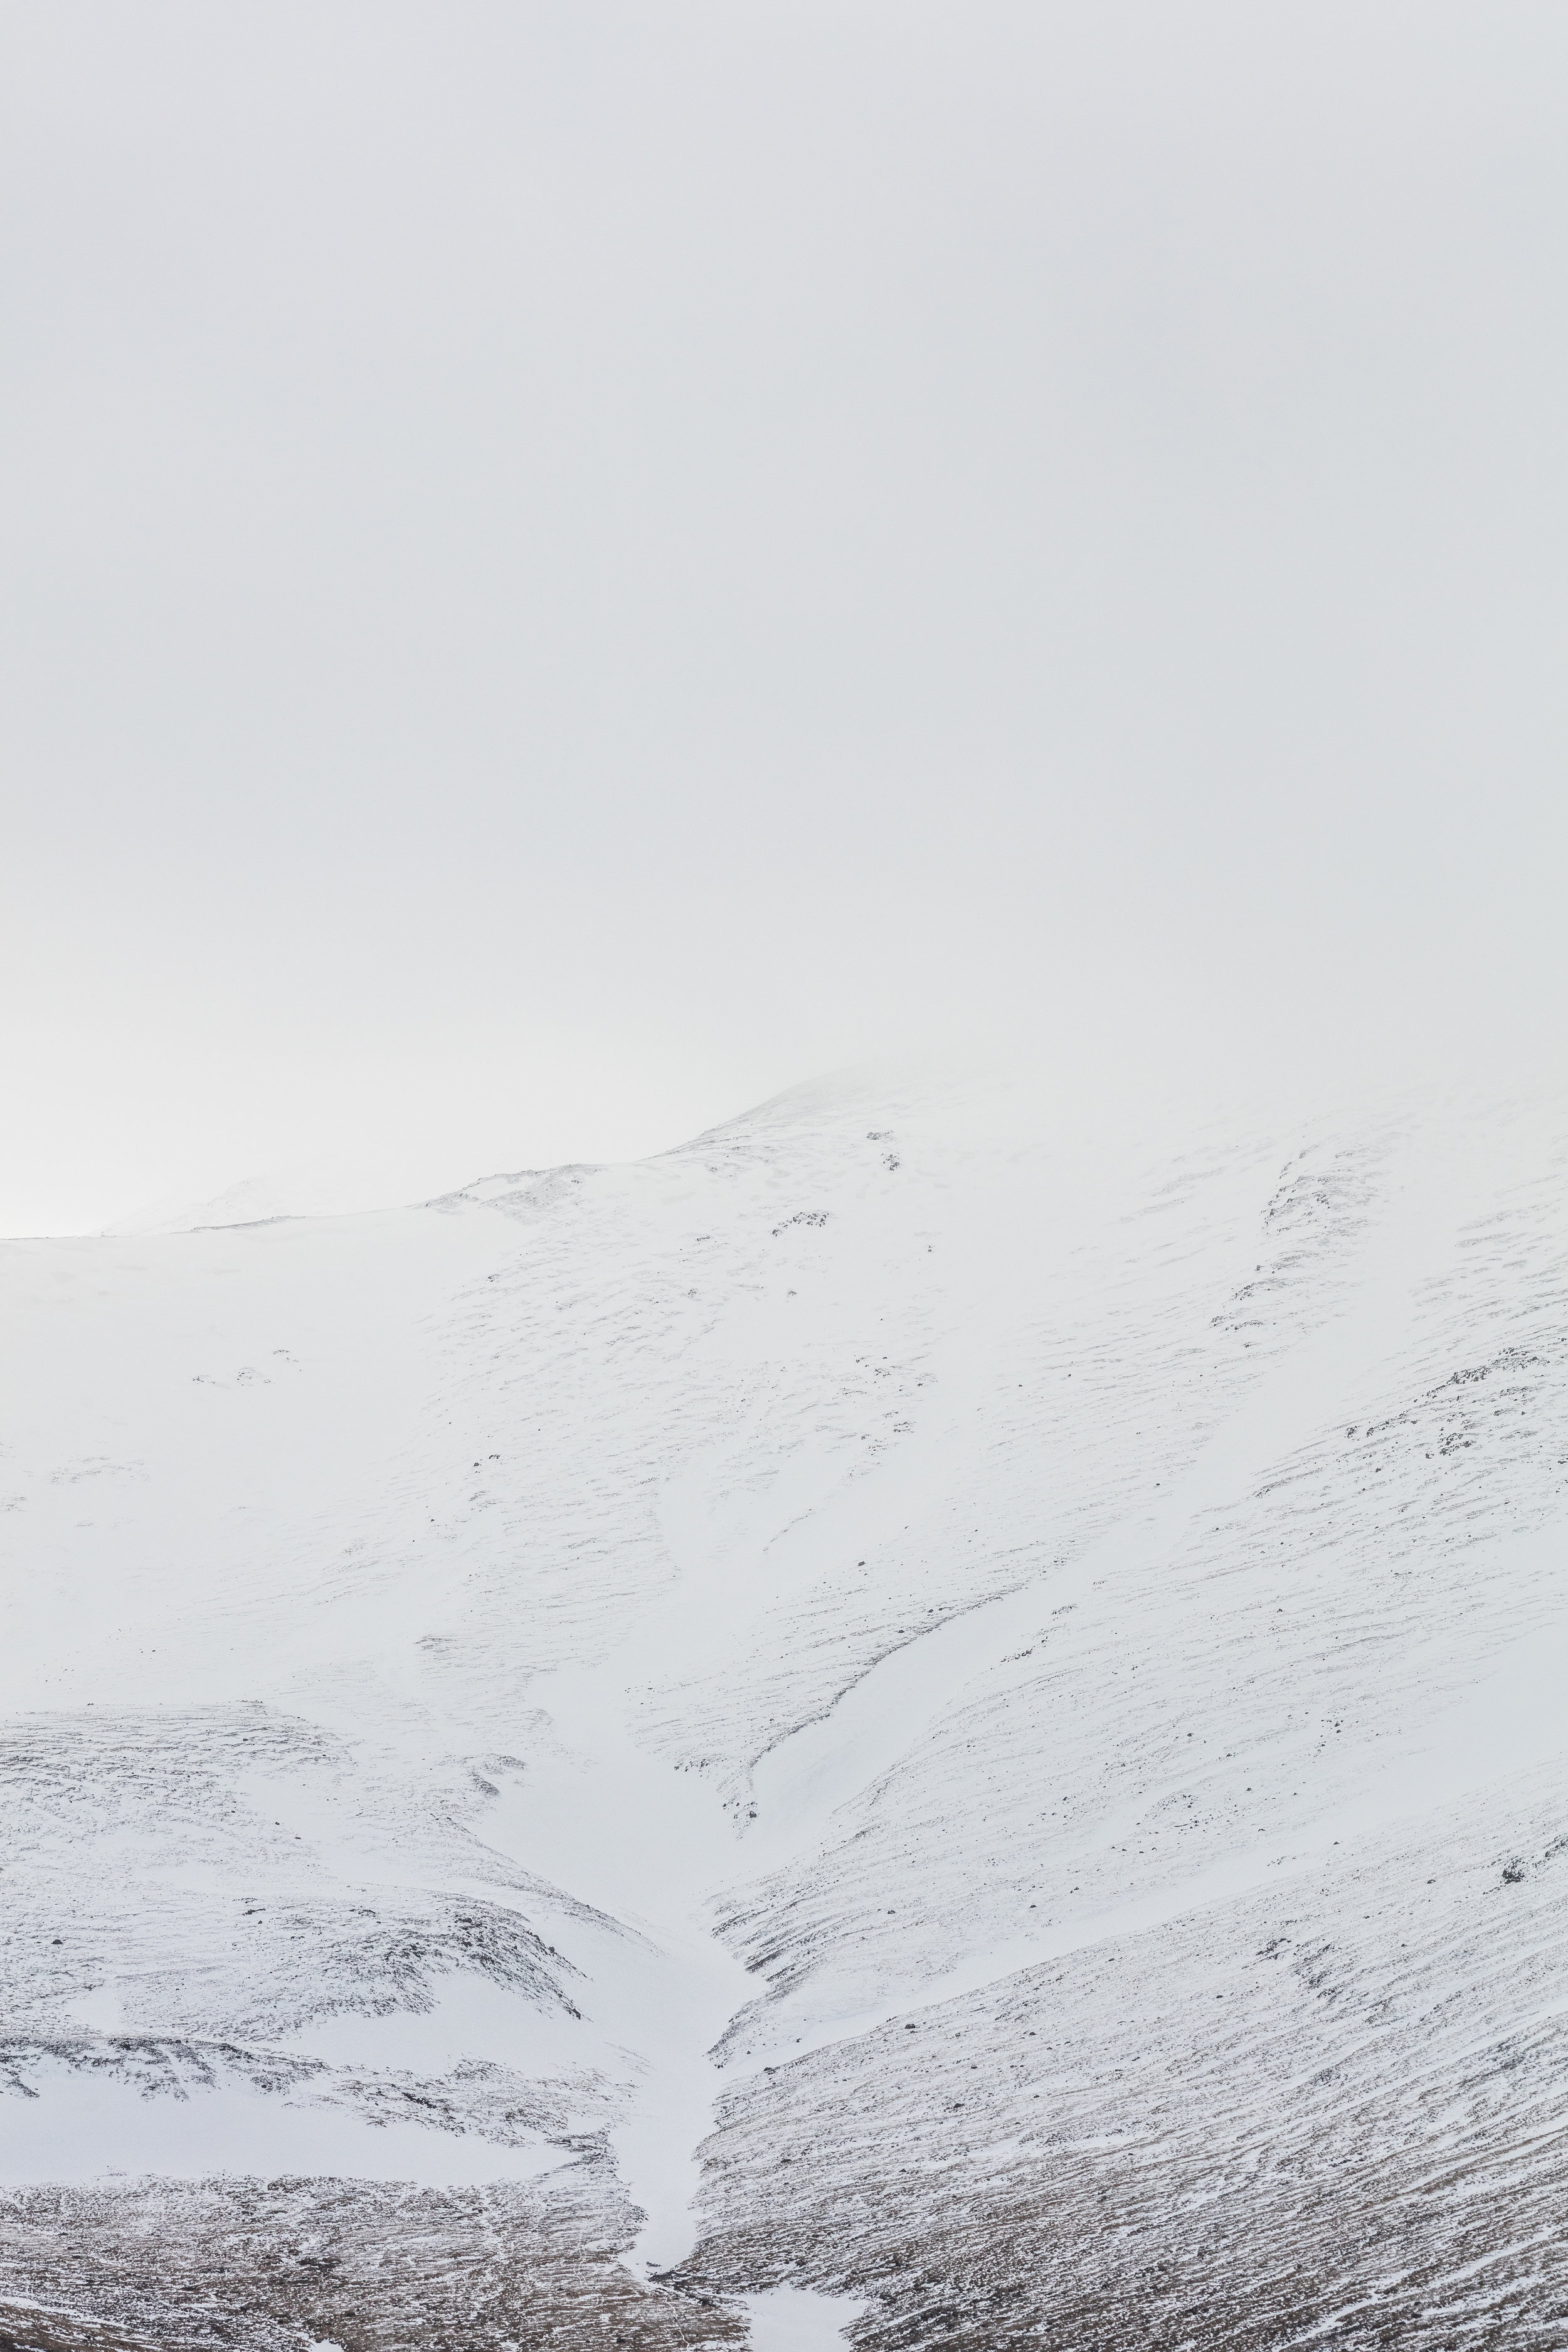 Misty Snow Capped Mountains and Valleys, Iceland | The Fox Plateau - Faune